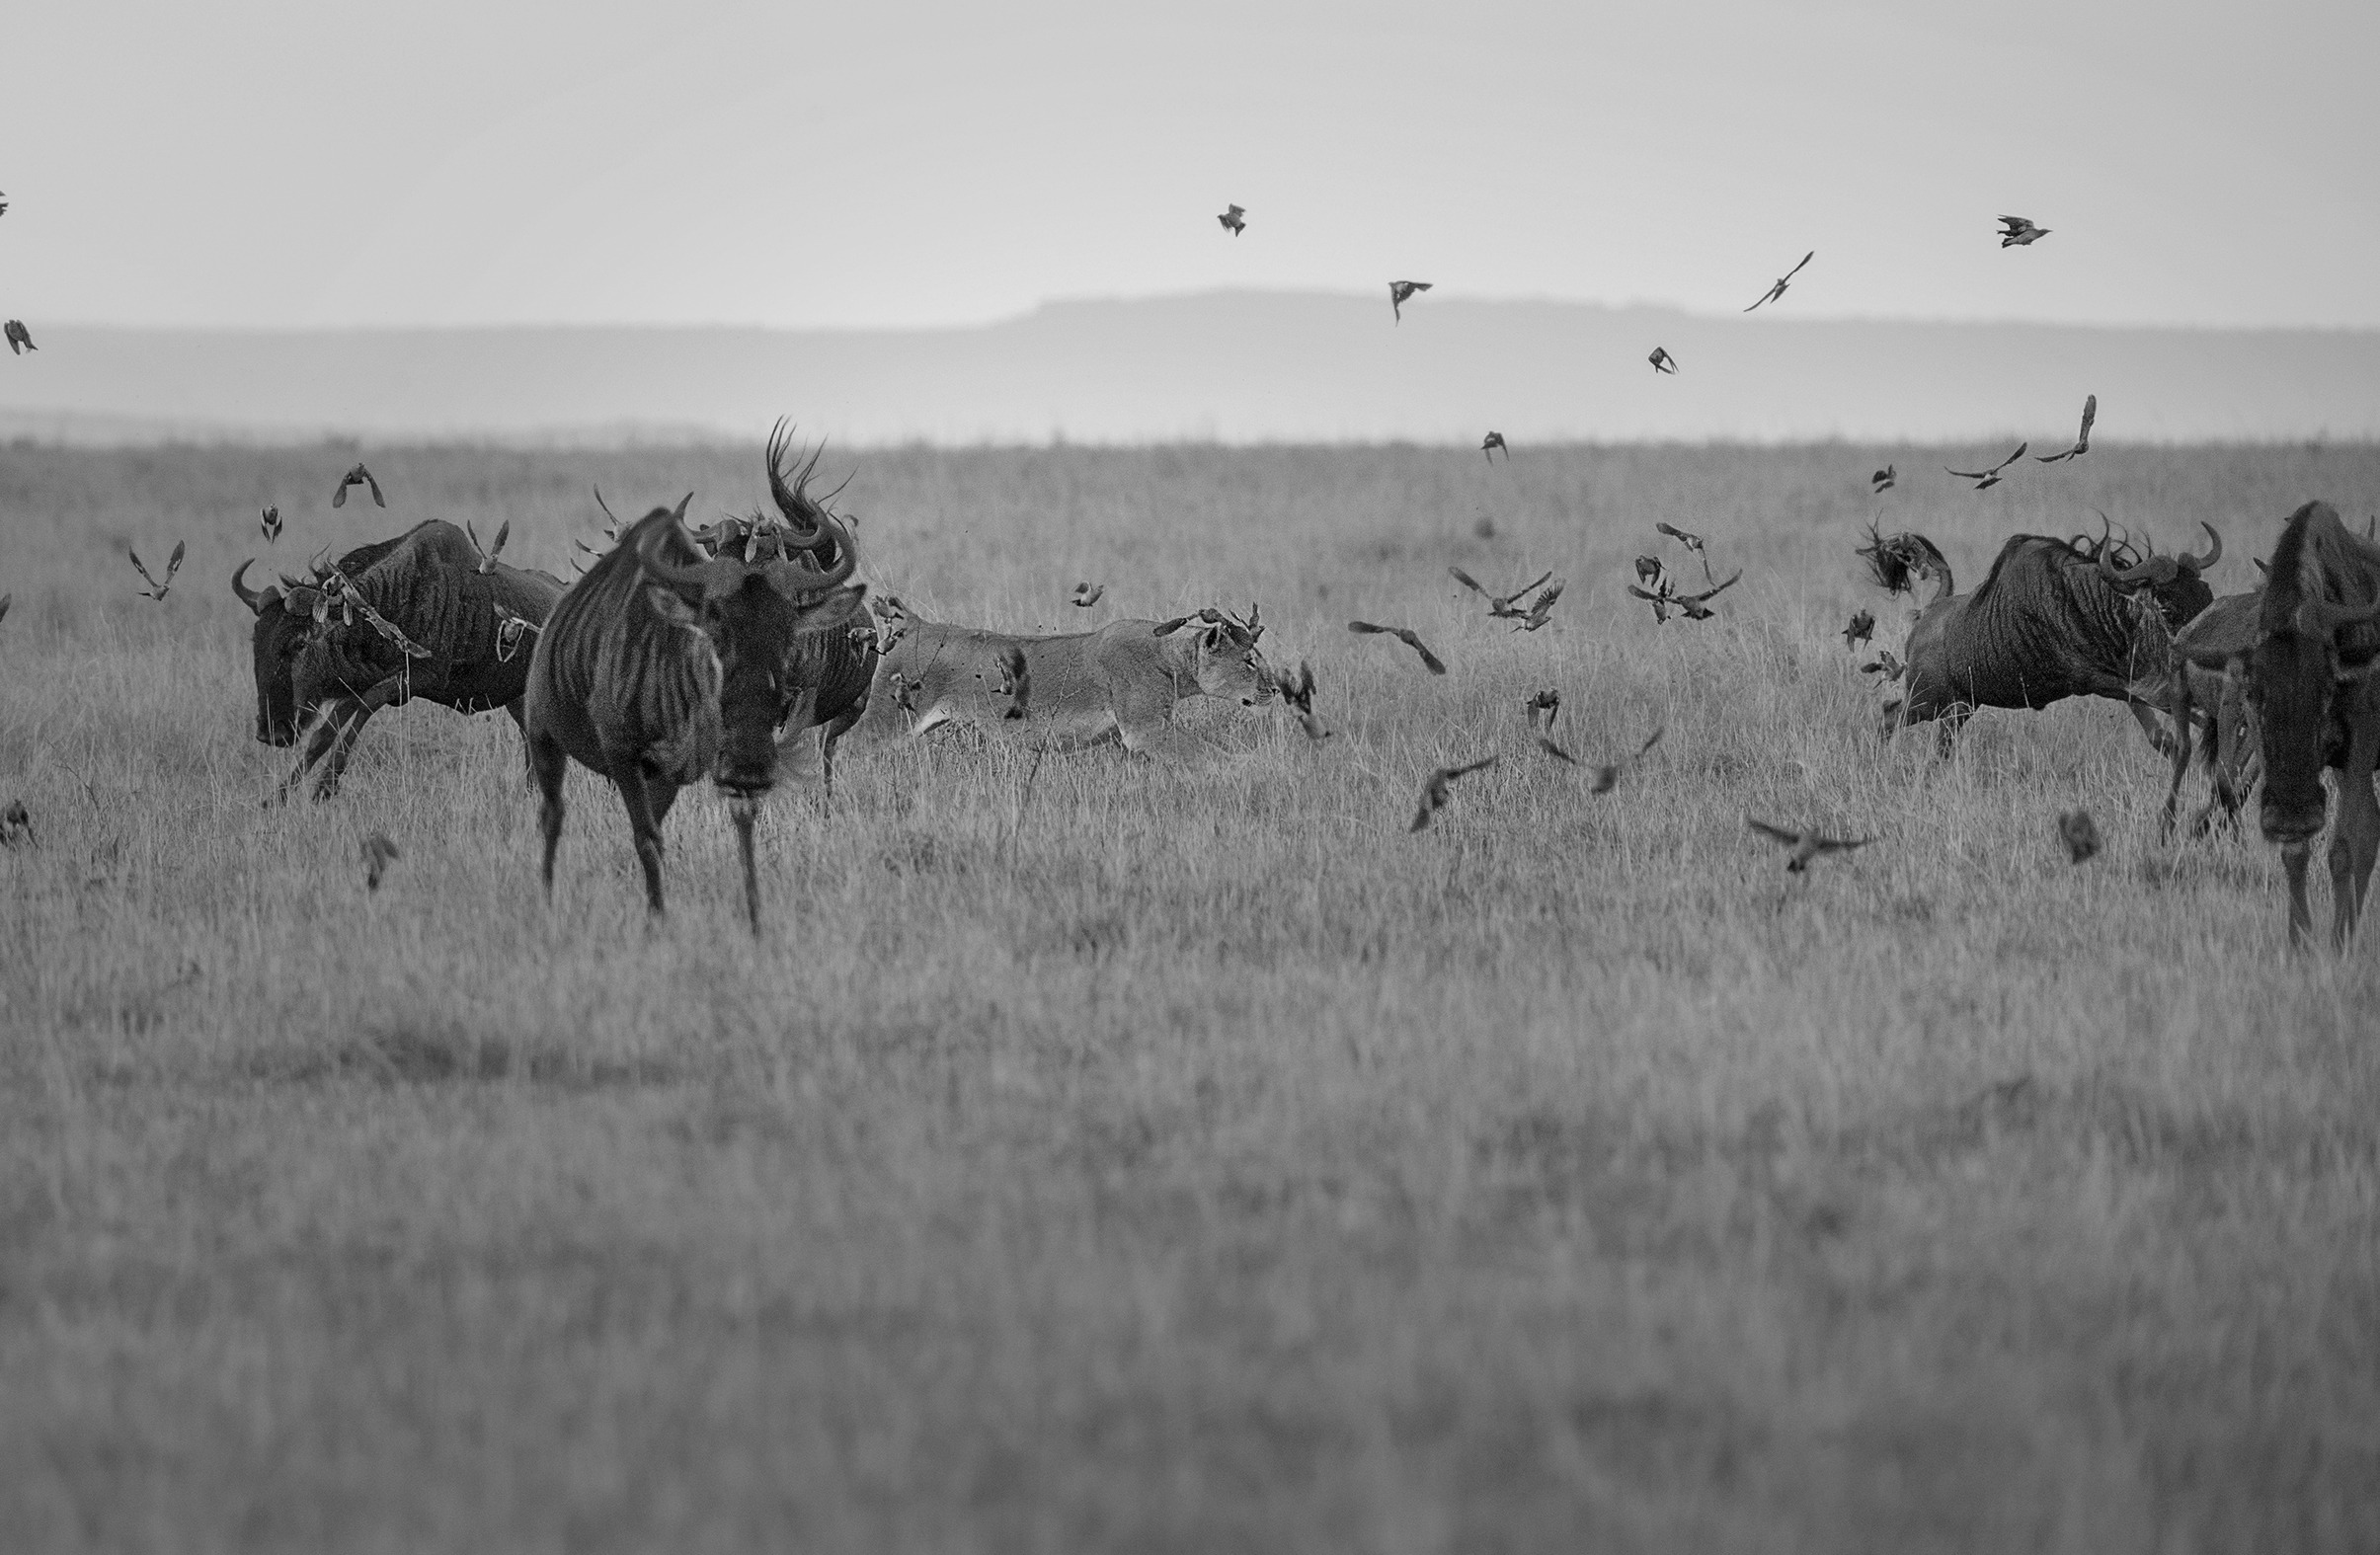 Lioness launches a hunt in Maasai Mara captured on Photo Safari with ClementWild